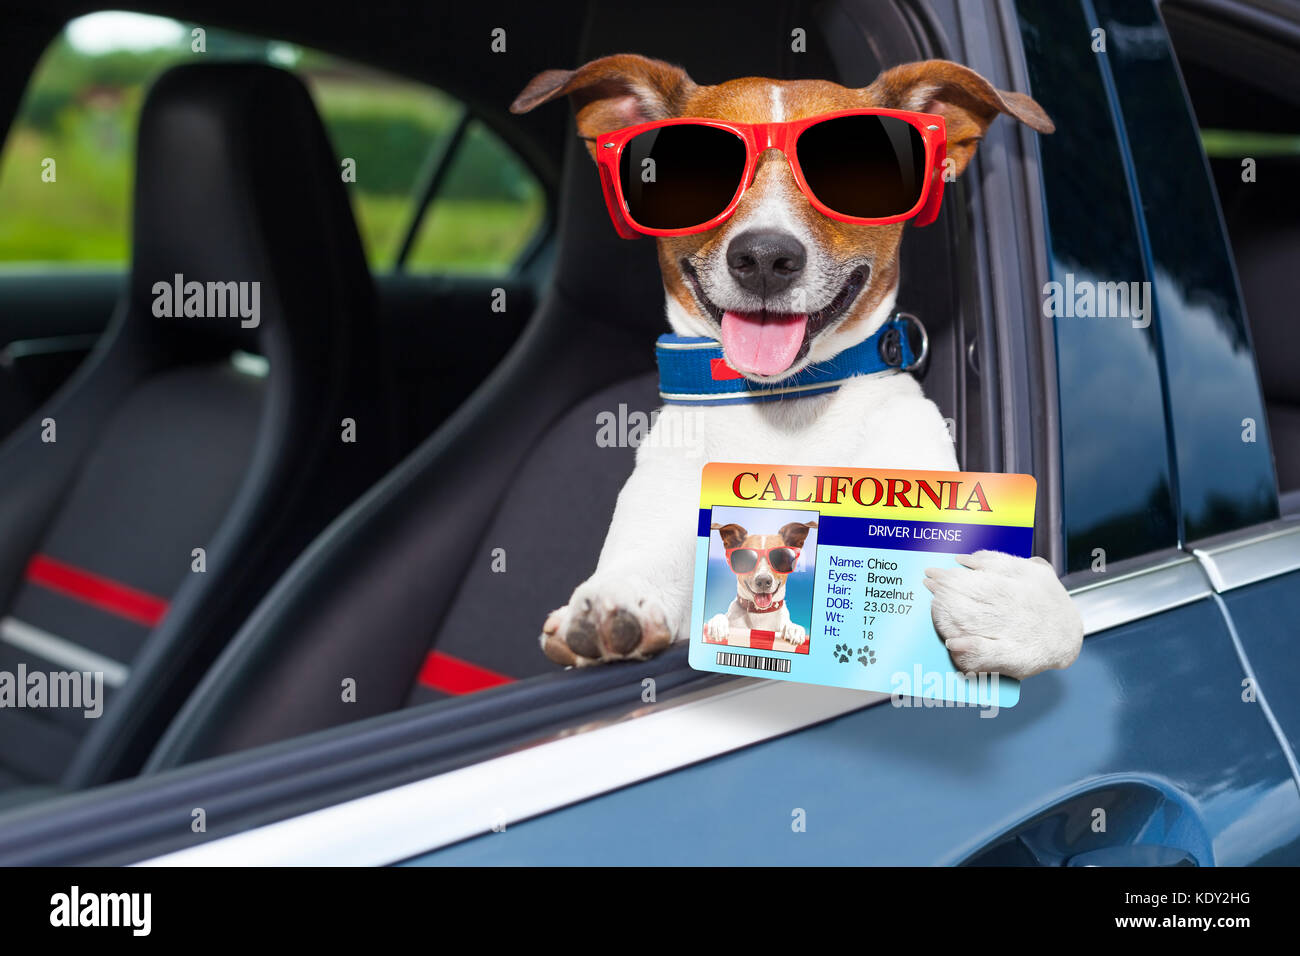 dog leaning out the car window showing the drivers license - Stock Image